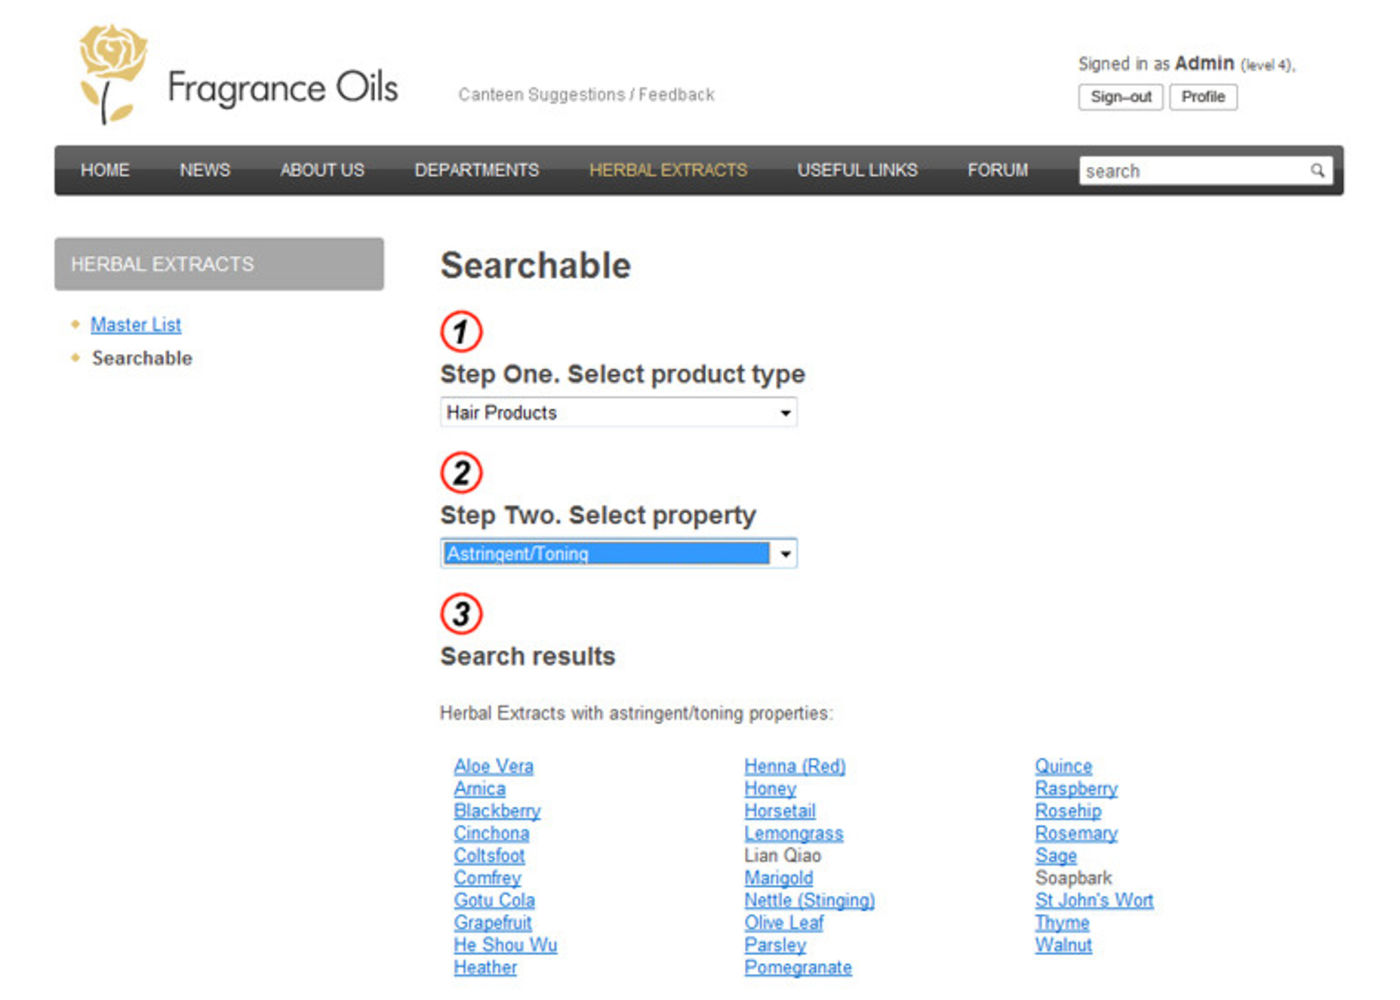 Fragrance Oils Ltd Searchable